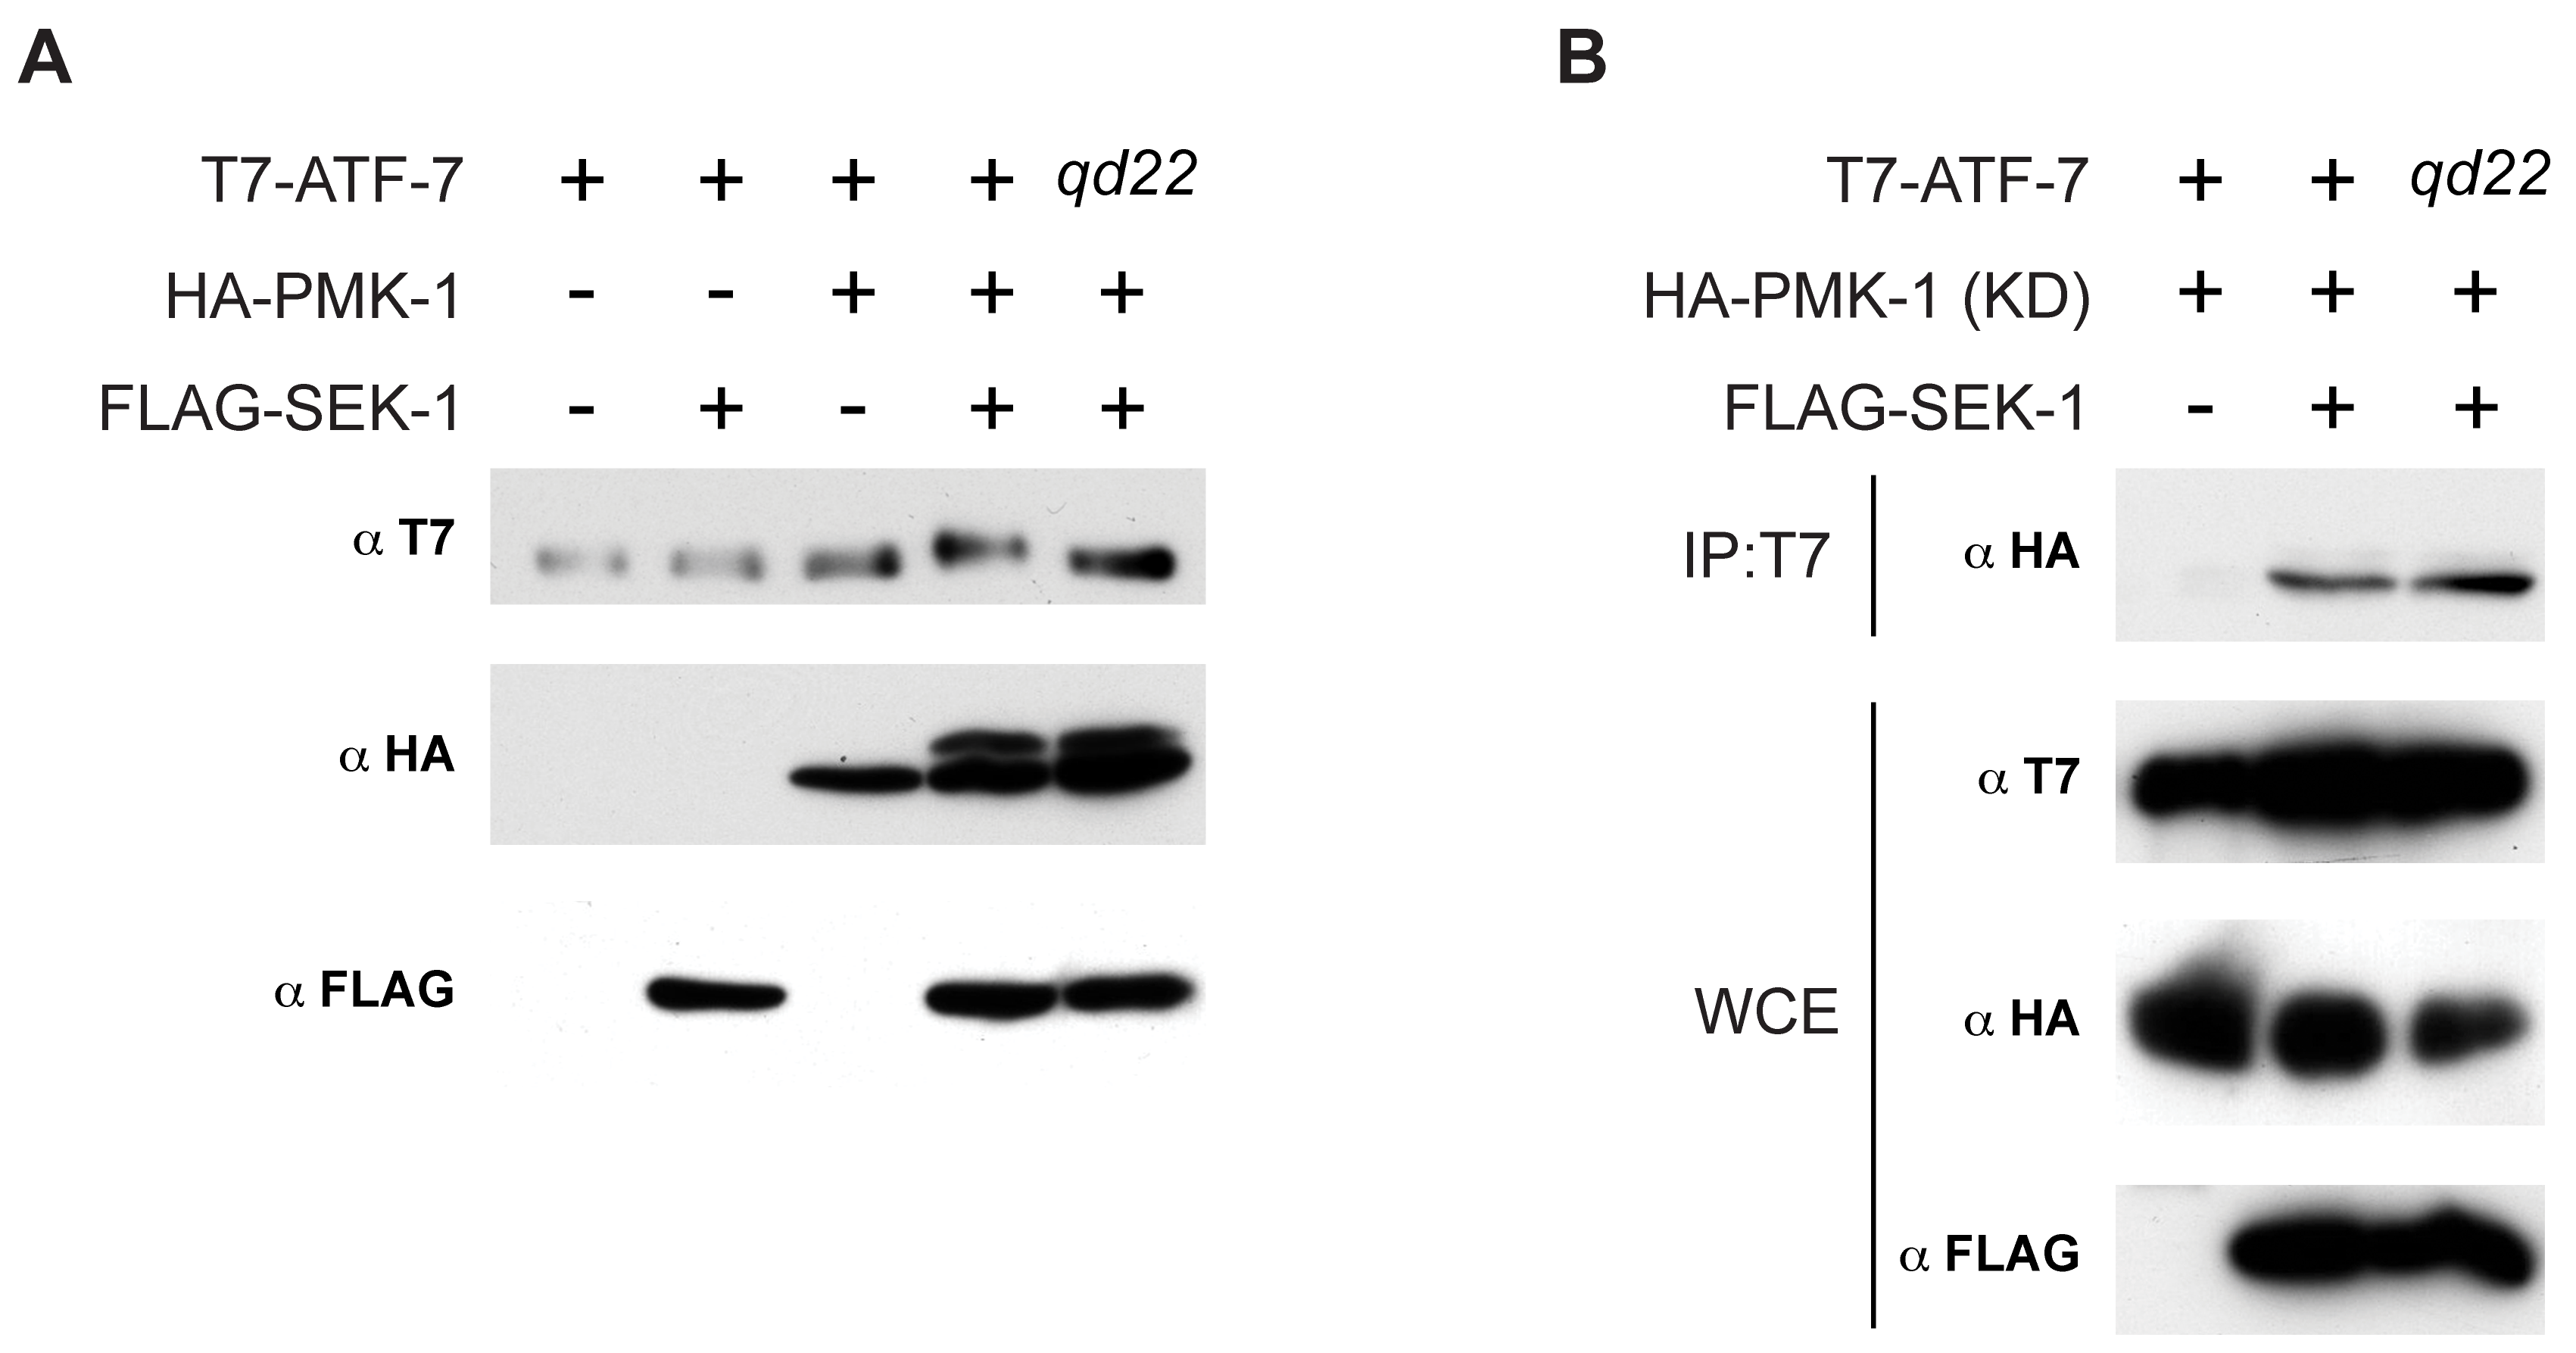 Phosphorylation of ATF-7 by PMK-1.